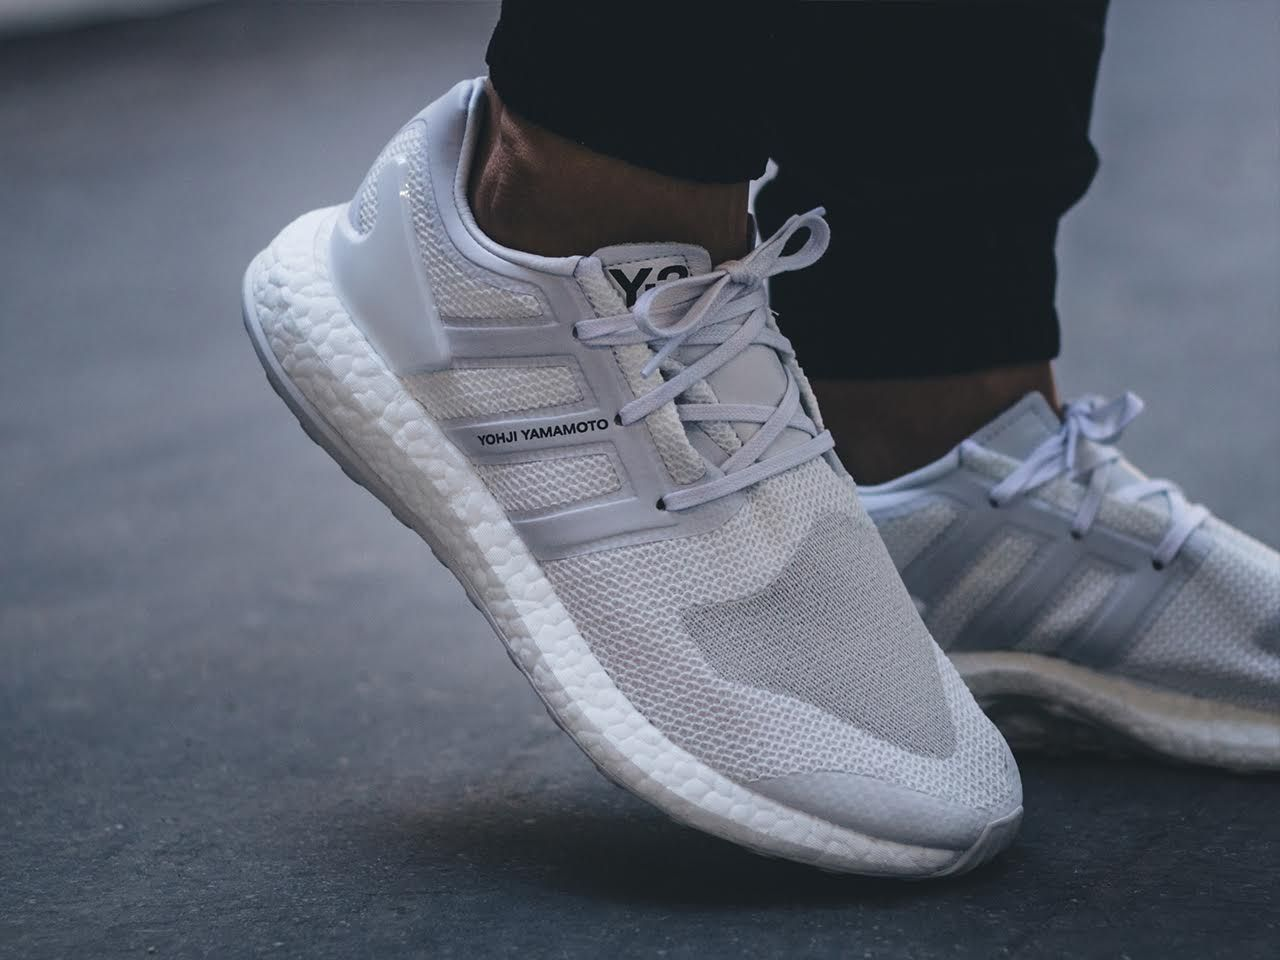 62c58b79646a On-Feet Images Of The Upcoming adidas Y-3 Pure Boost Triple White •  KicksOnFire.com